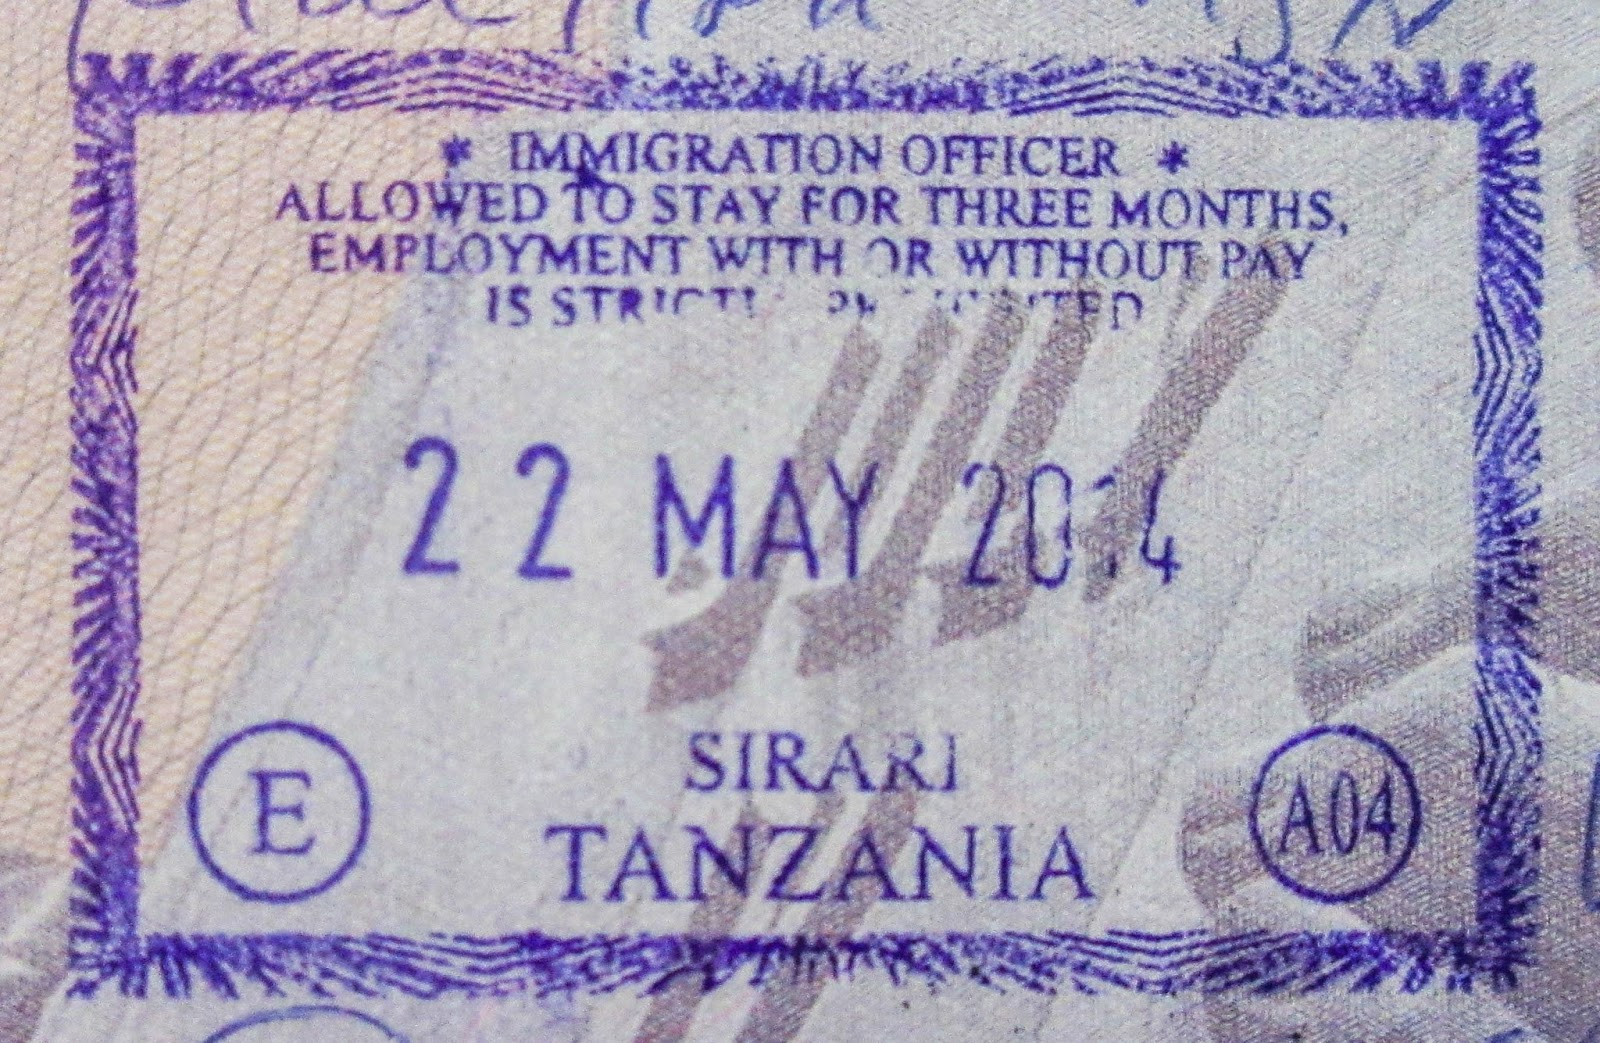 Tanzania Cancels Visa On Arrival For Drc Over Security Concerns Cgtn Africa